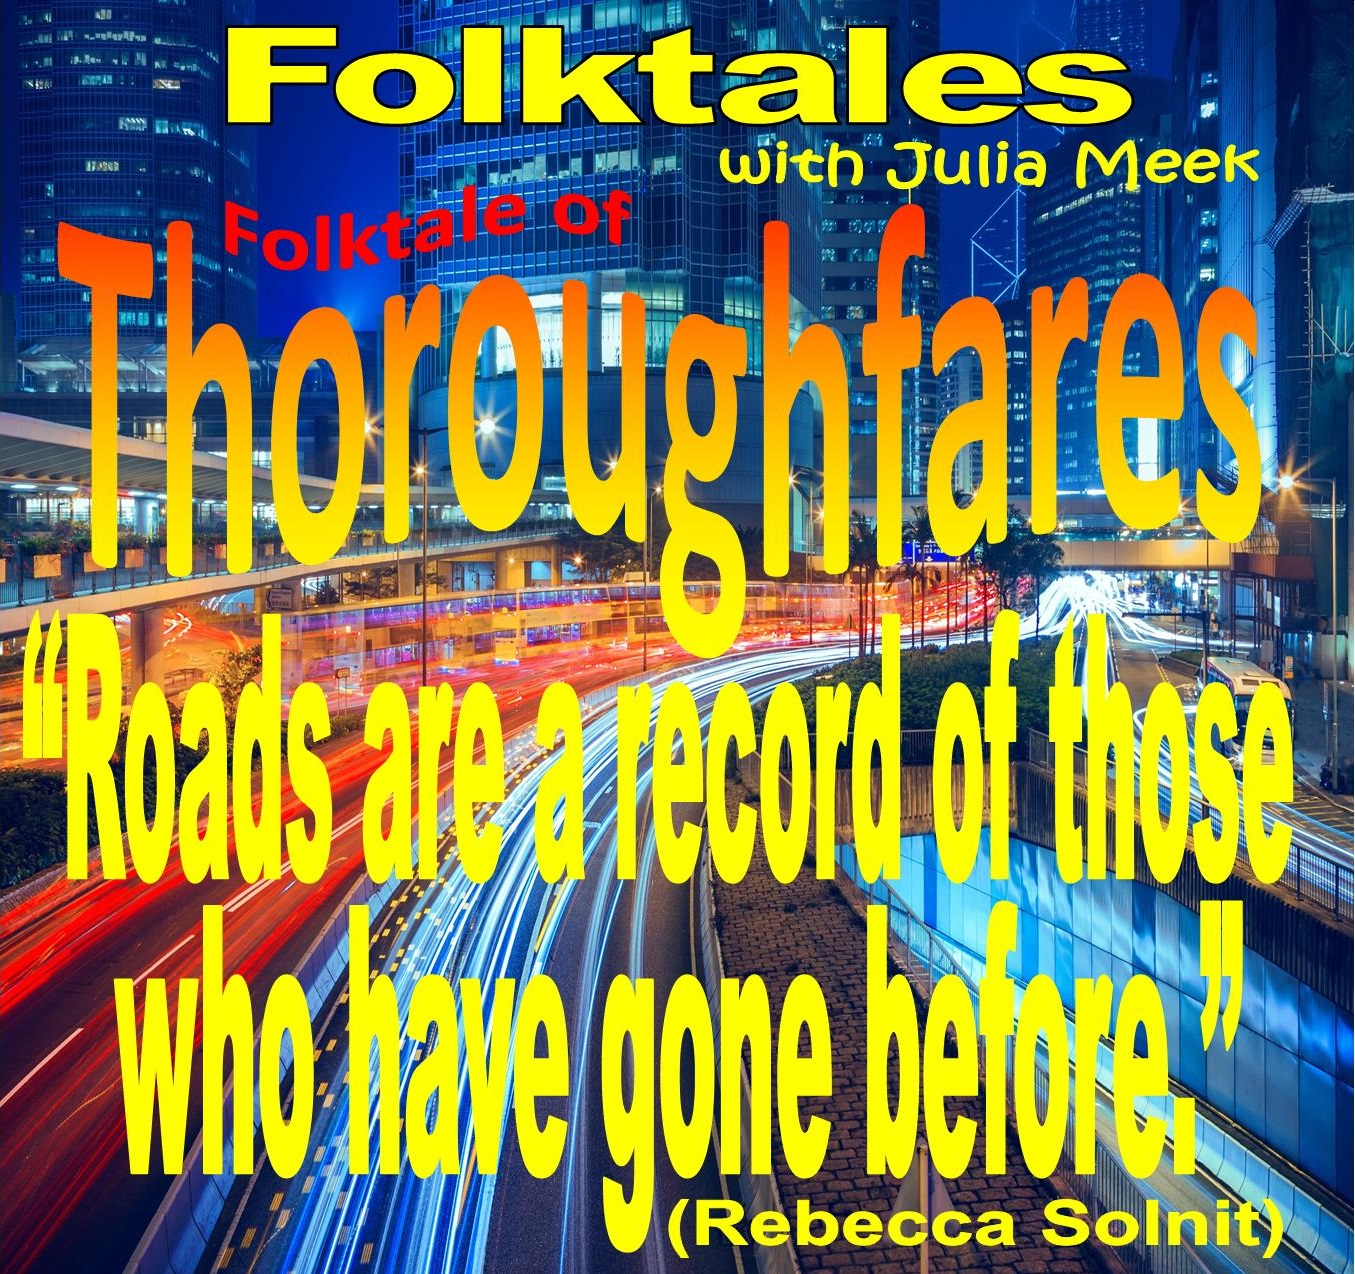 Ft_weekly_thoroughfares_verse_small